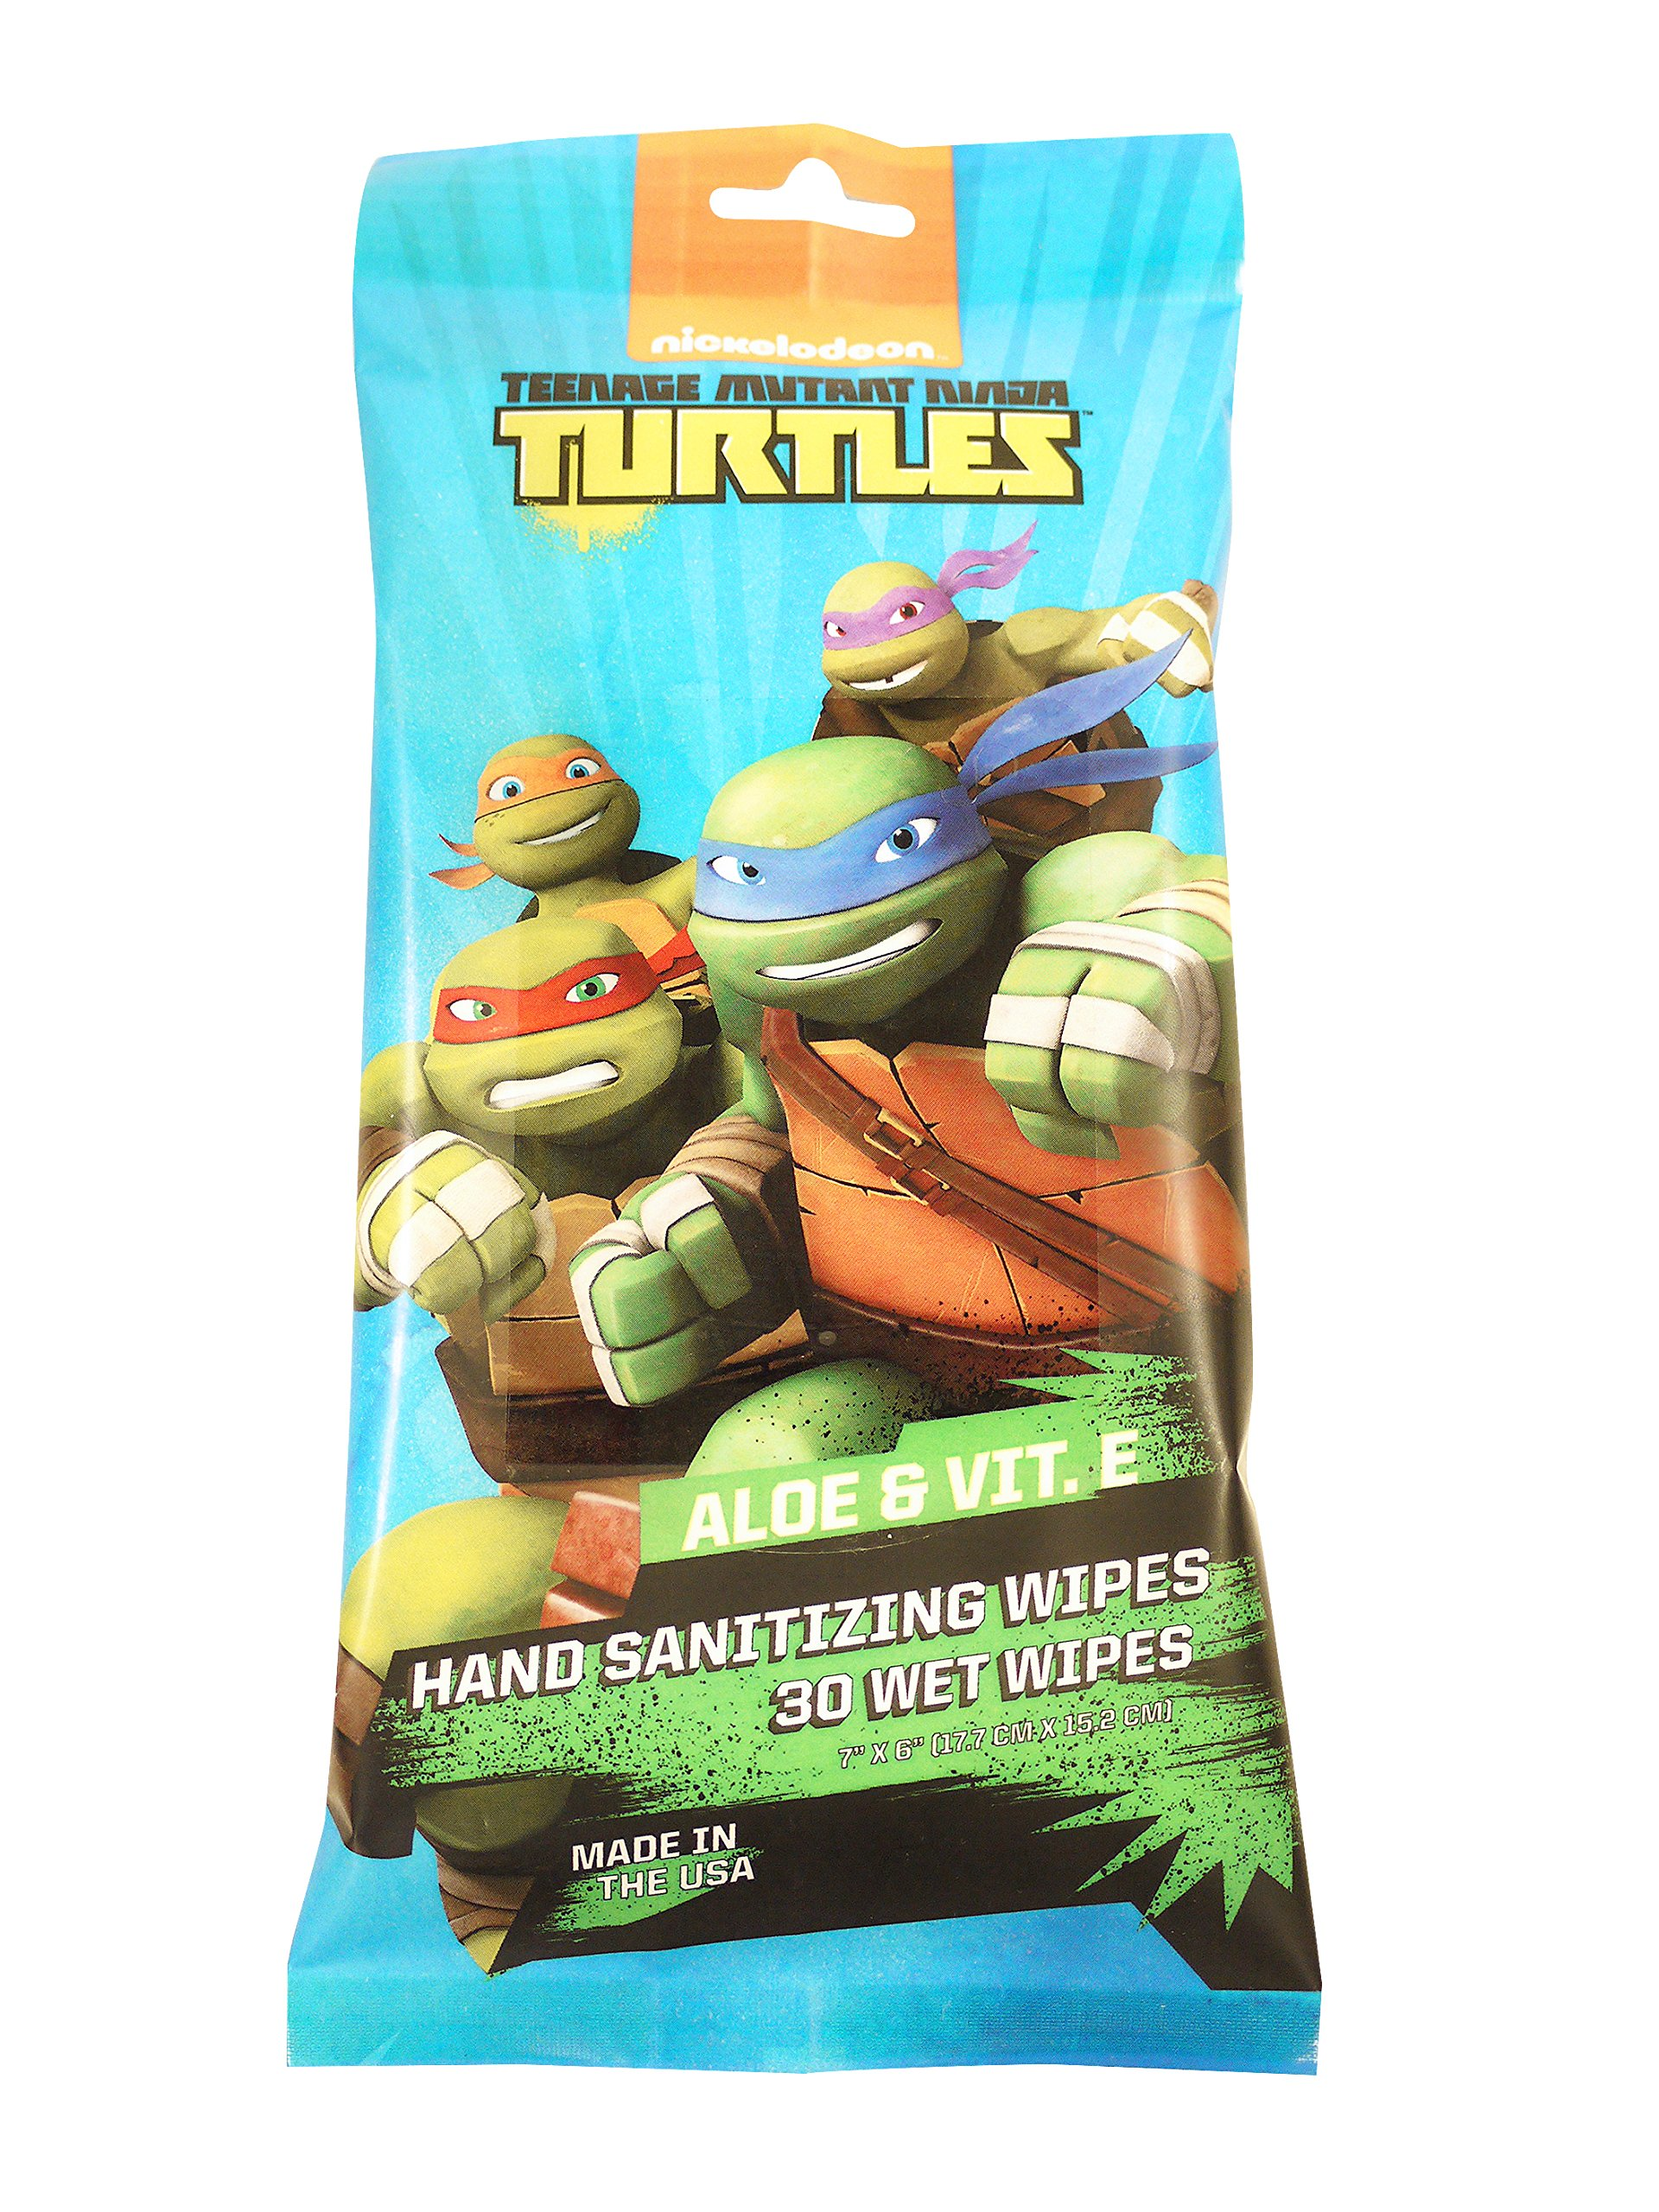 Disposable Hand Sanitizing Travel Wipes: Teenage Mutant Ninja Turtle Fresh Cleansing Sanitizer Wipe for Hands or Face with Aloe - 30 Count, Pack of 6 (total 180 wipes)